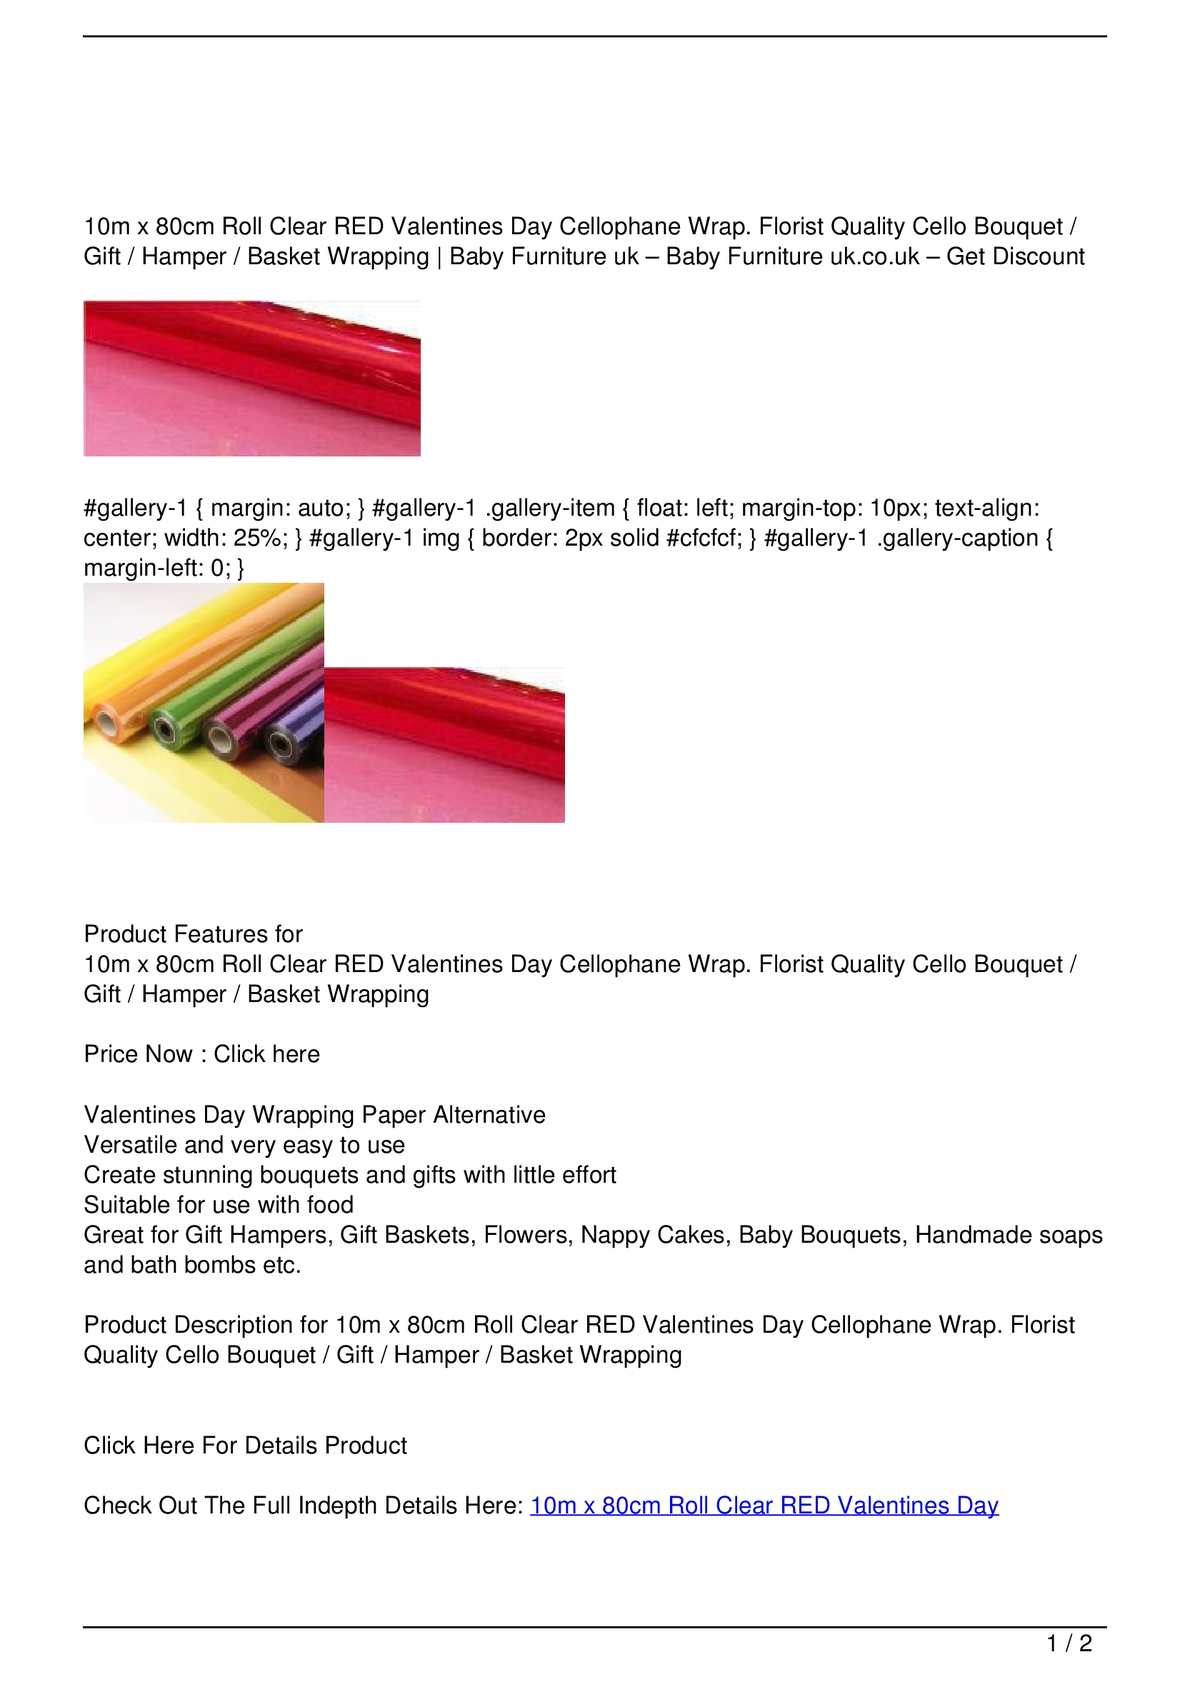 Calameo 10m X 80cm Roll Clear Red Valentines Day Cellophane Wrap